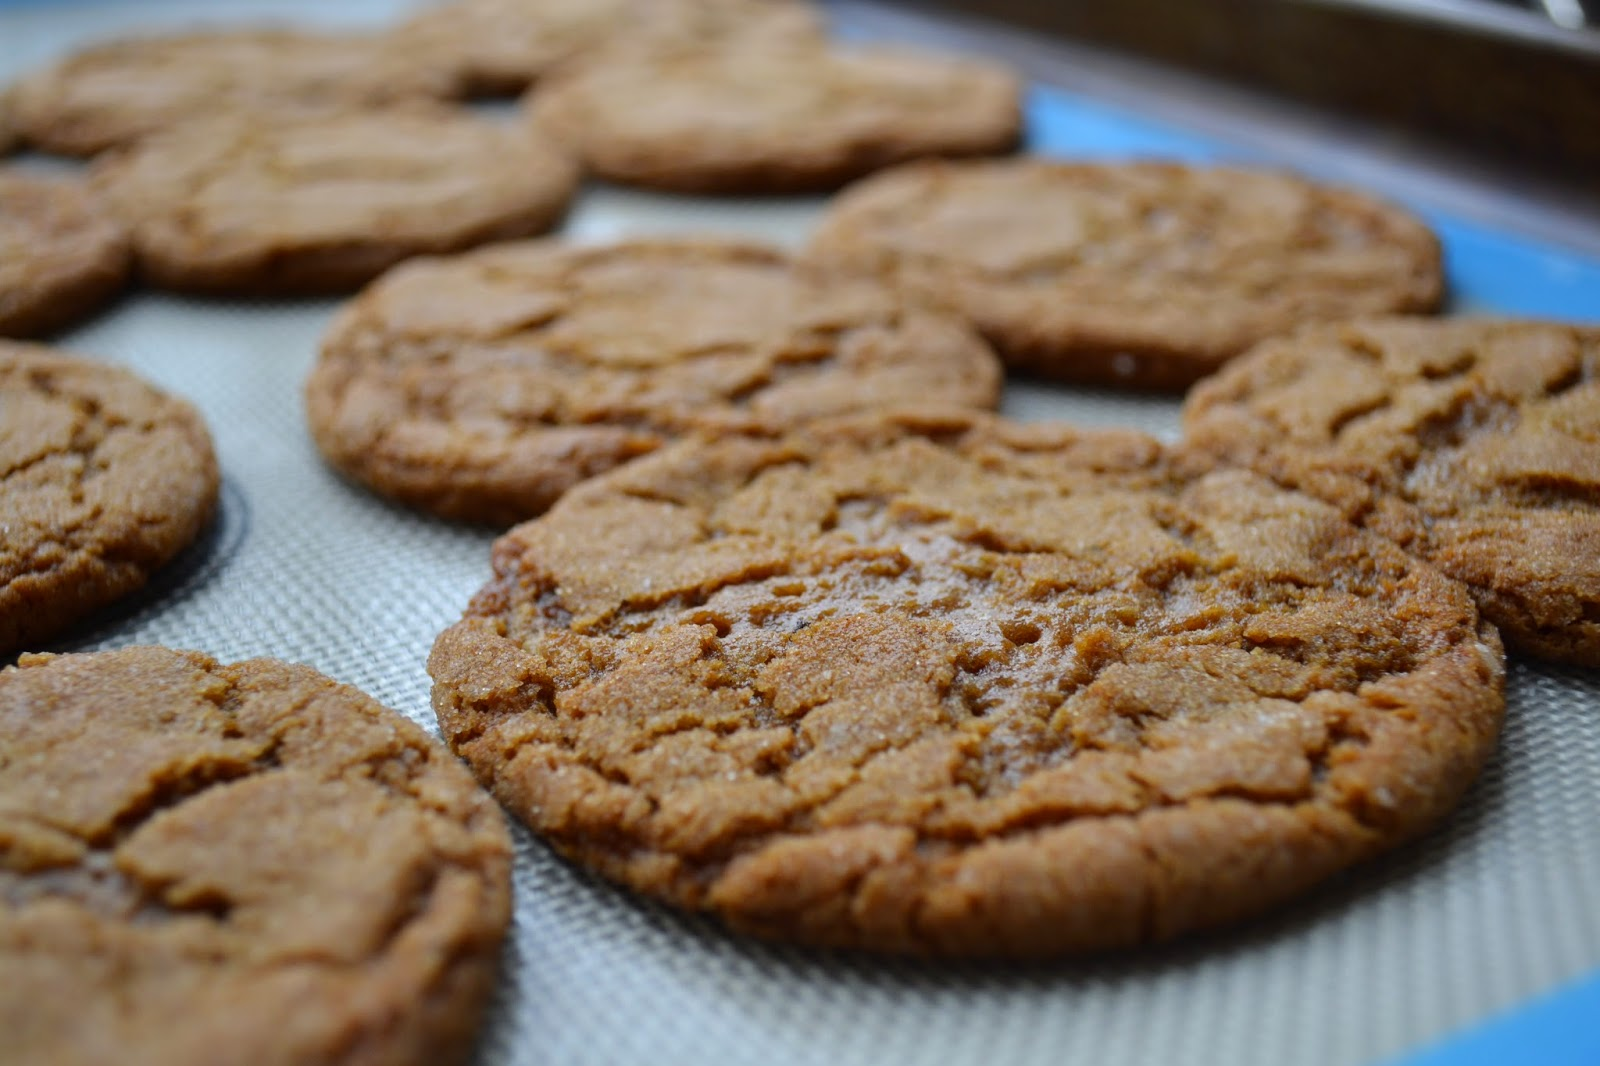 Making Miracles: Spicy Ginger Cookies